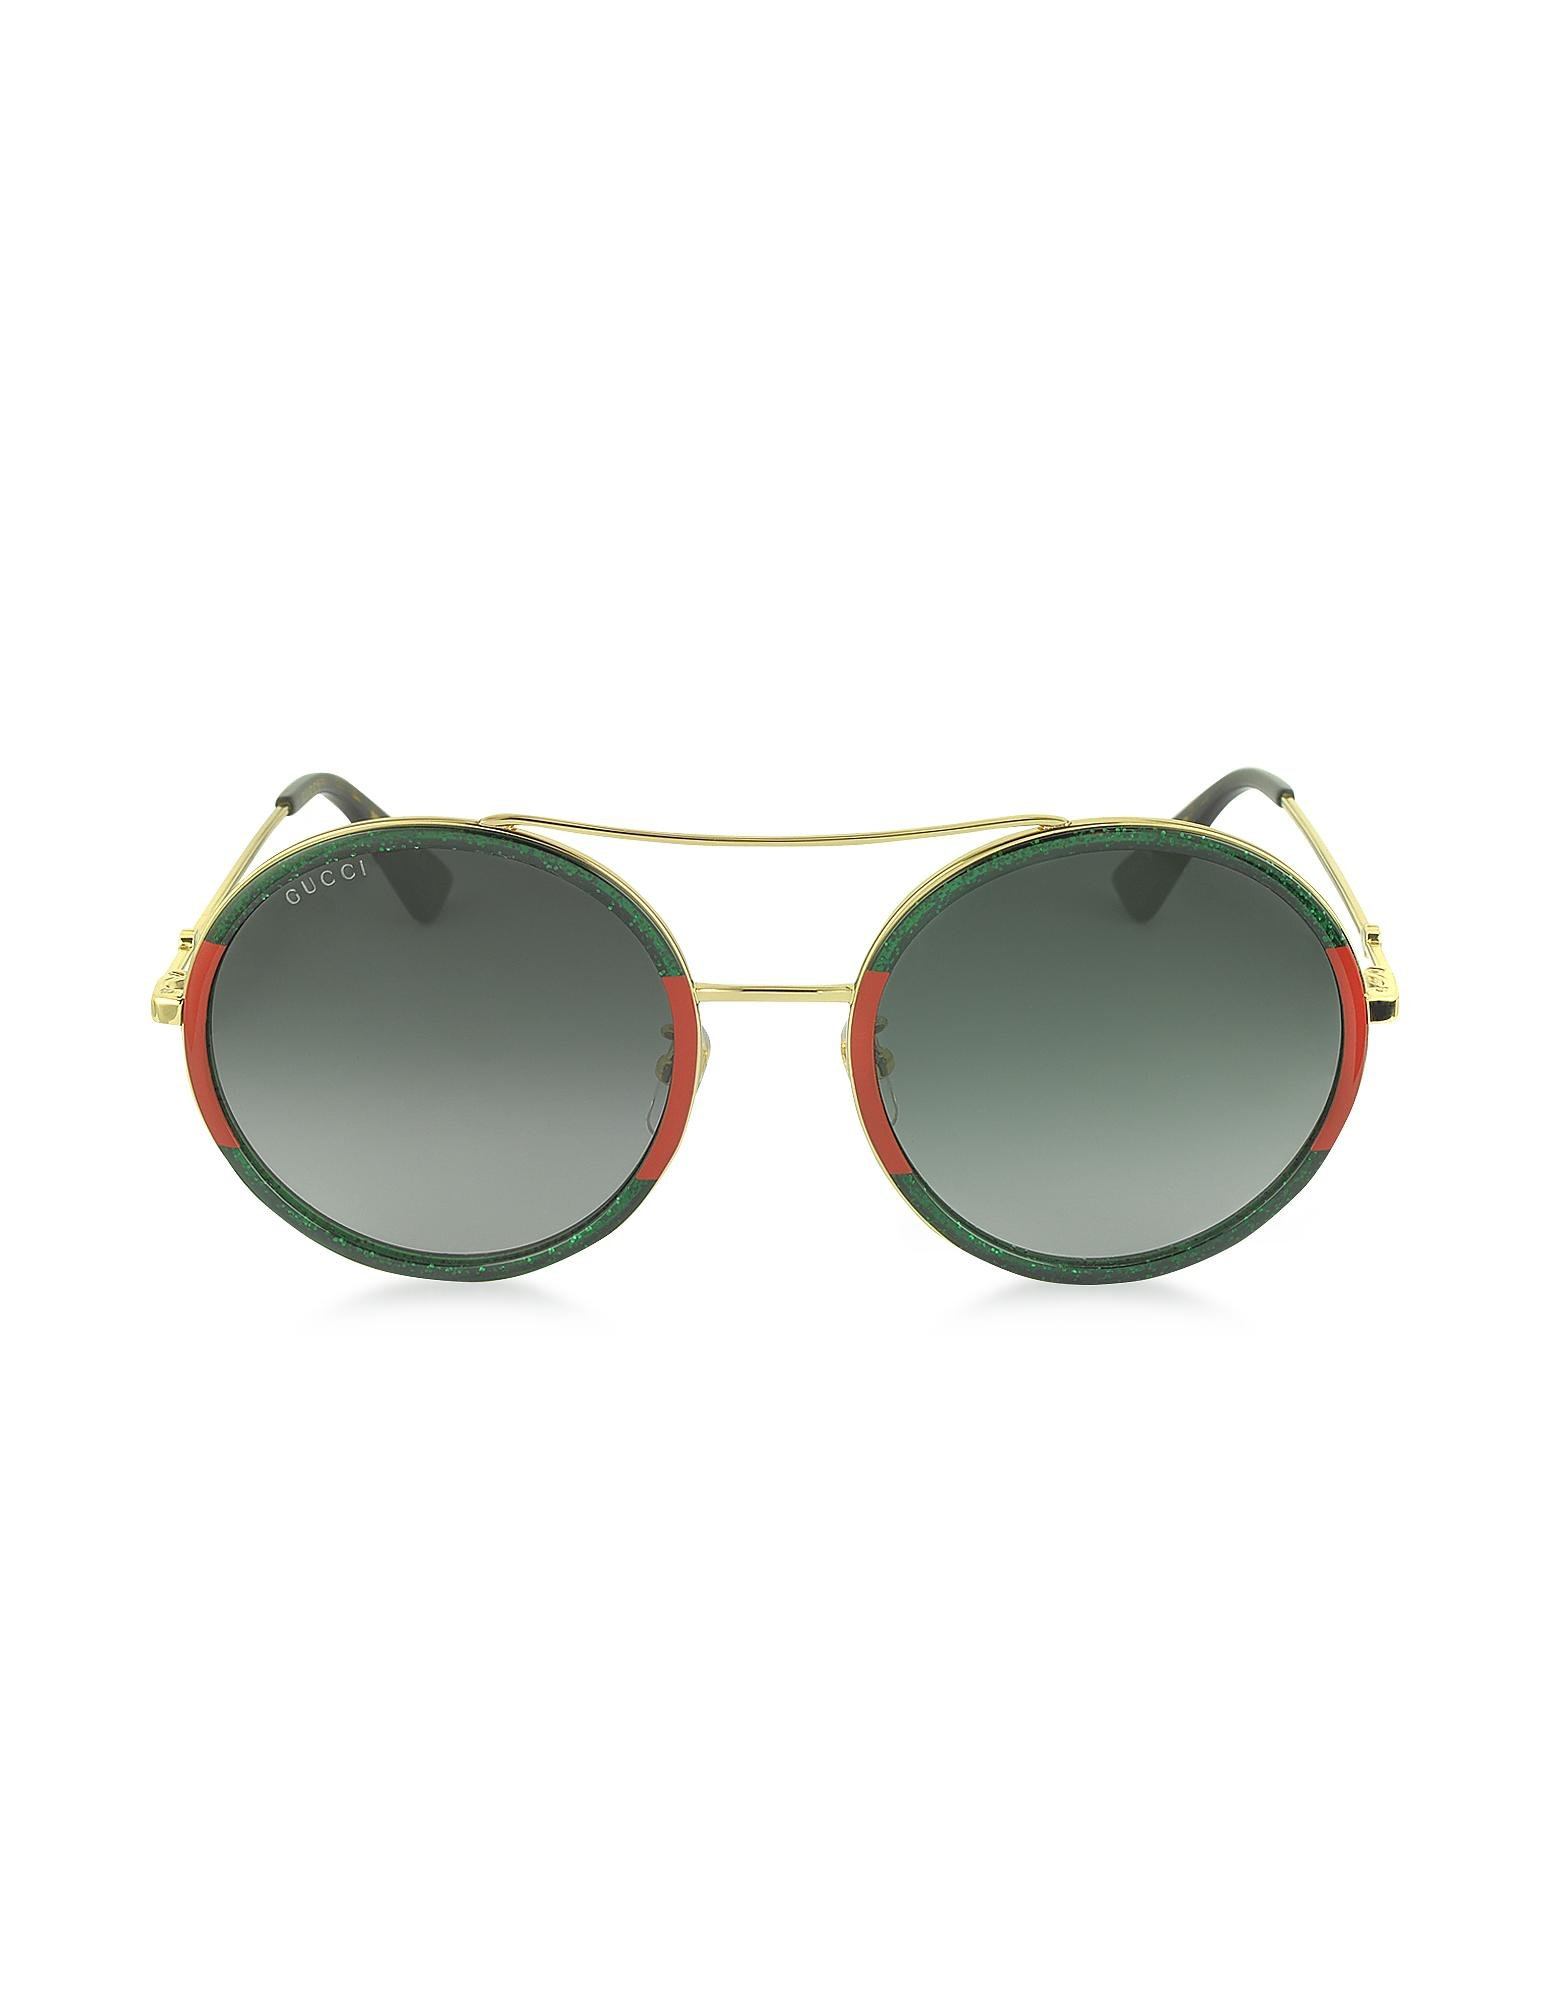 469a78434d Lyst - Gucci GG0061S Acetate And Gold Metal Round Aviator Women s ...